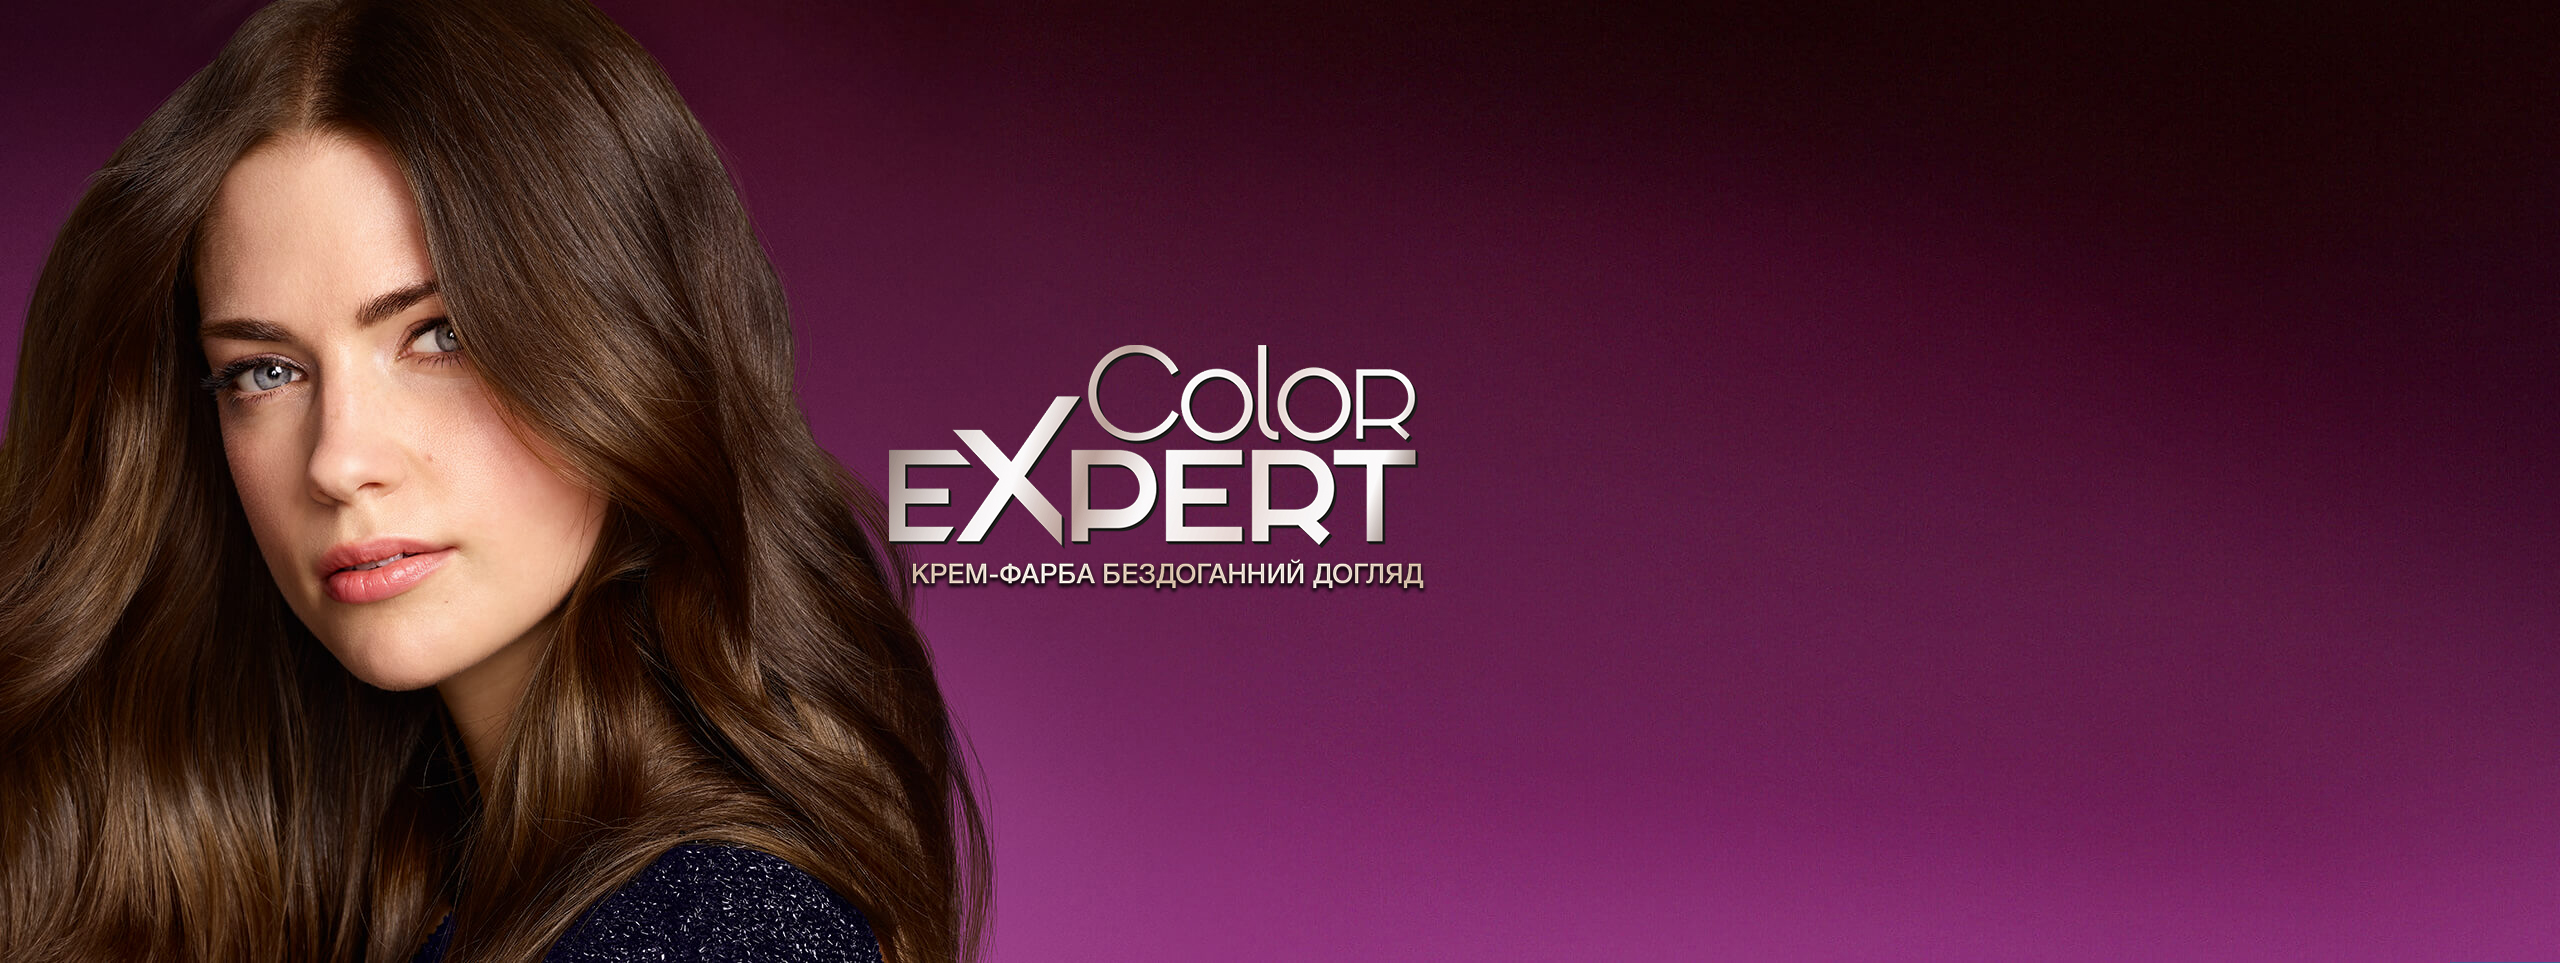 new landscape color expert